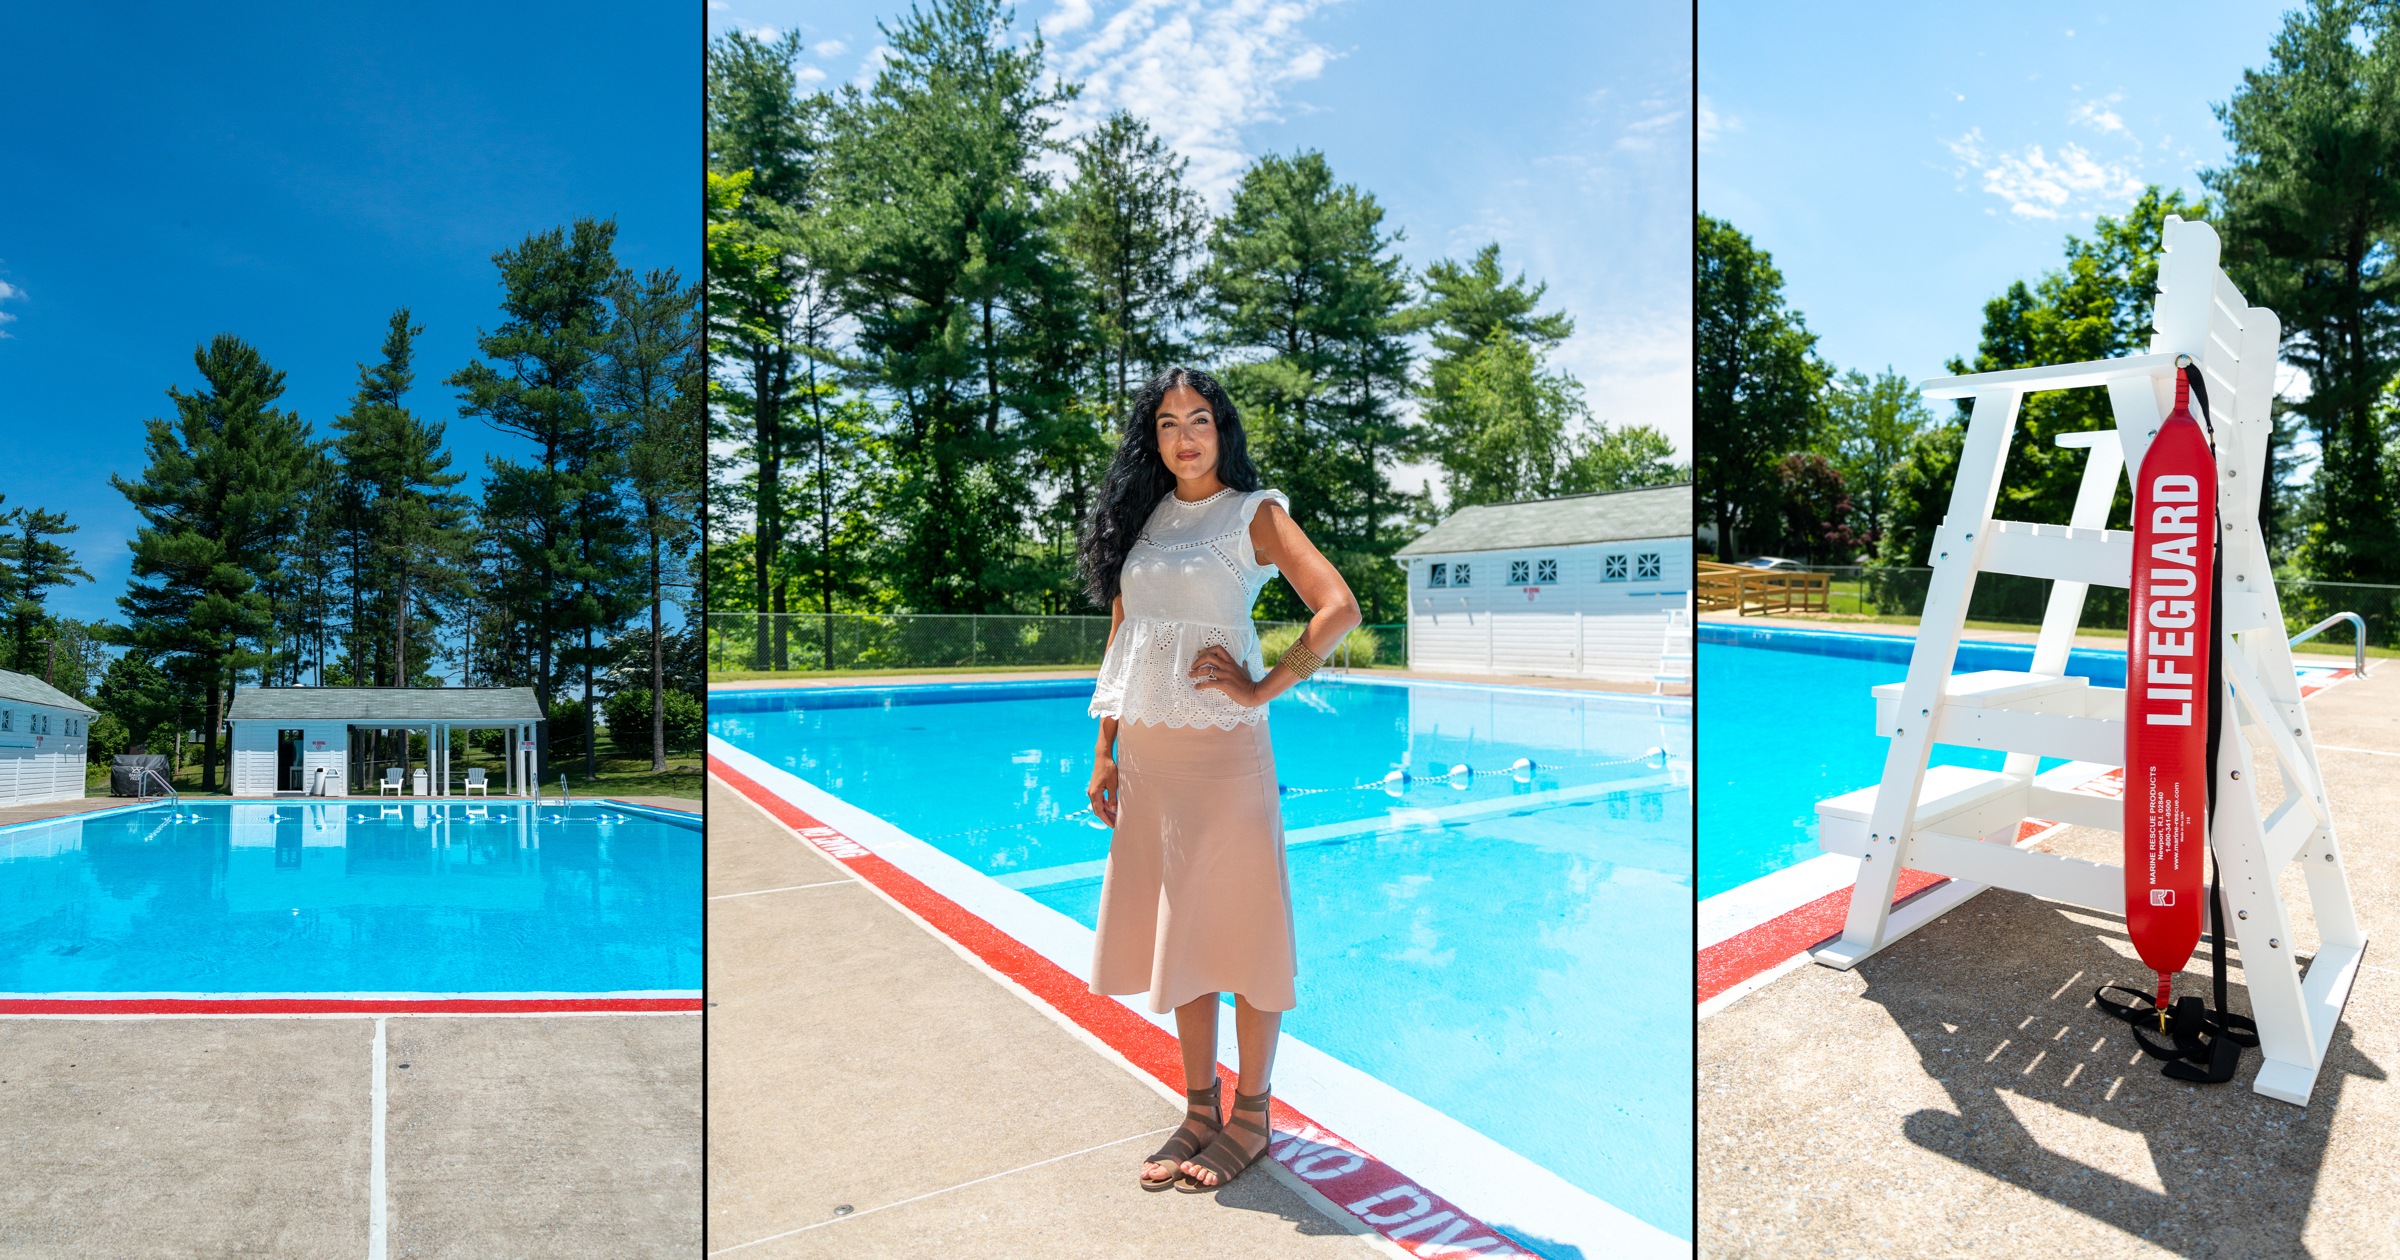 Pool at Lieutenant Governor's Residence opened for public use